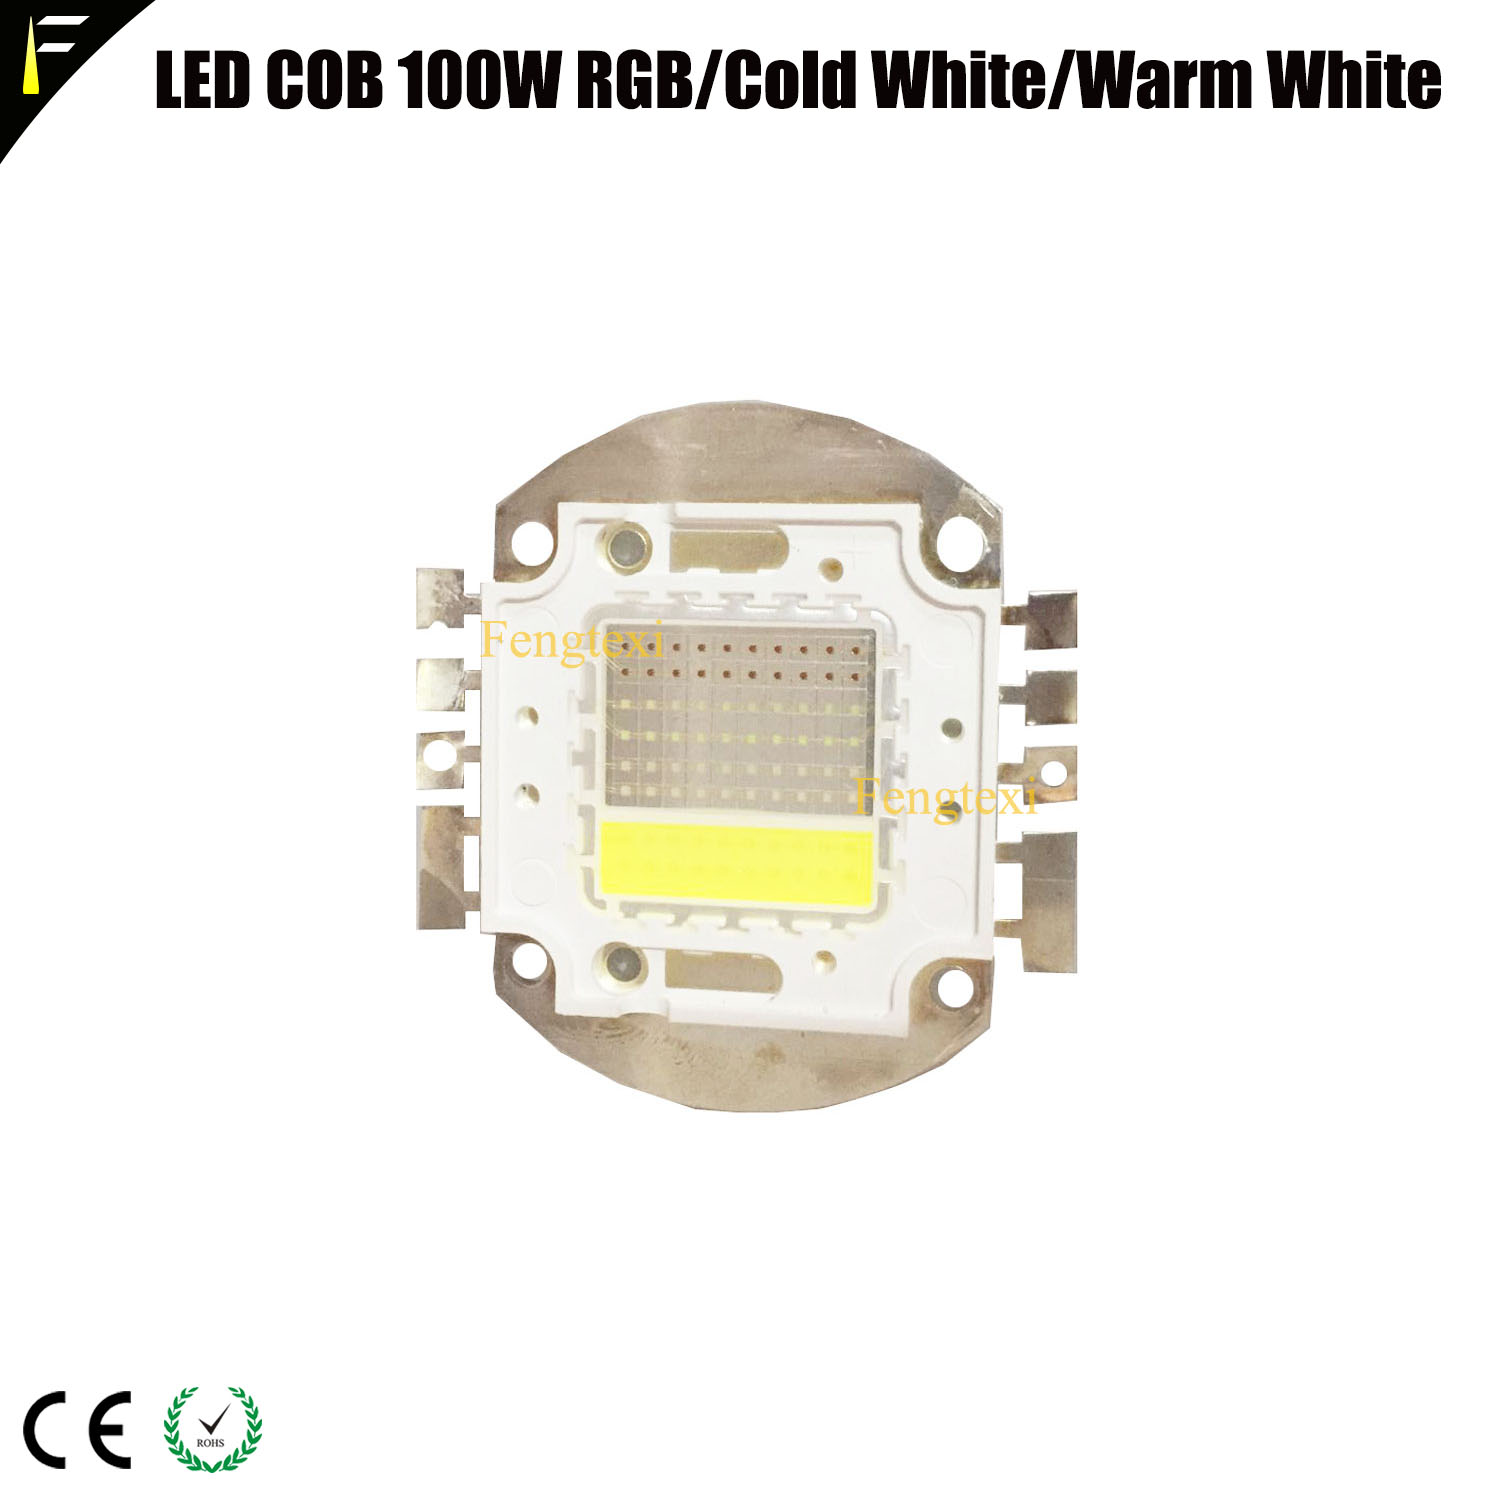 100W COB RGBW Red Green Blue White Light Welding <font><b>LED</b></font> Stage COB <font><b>Par</b></font> Can Blinder Light <font><b>Par</b></font> 3200k6500k Warm White Welding <font><b>LED</b></font> Bead image